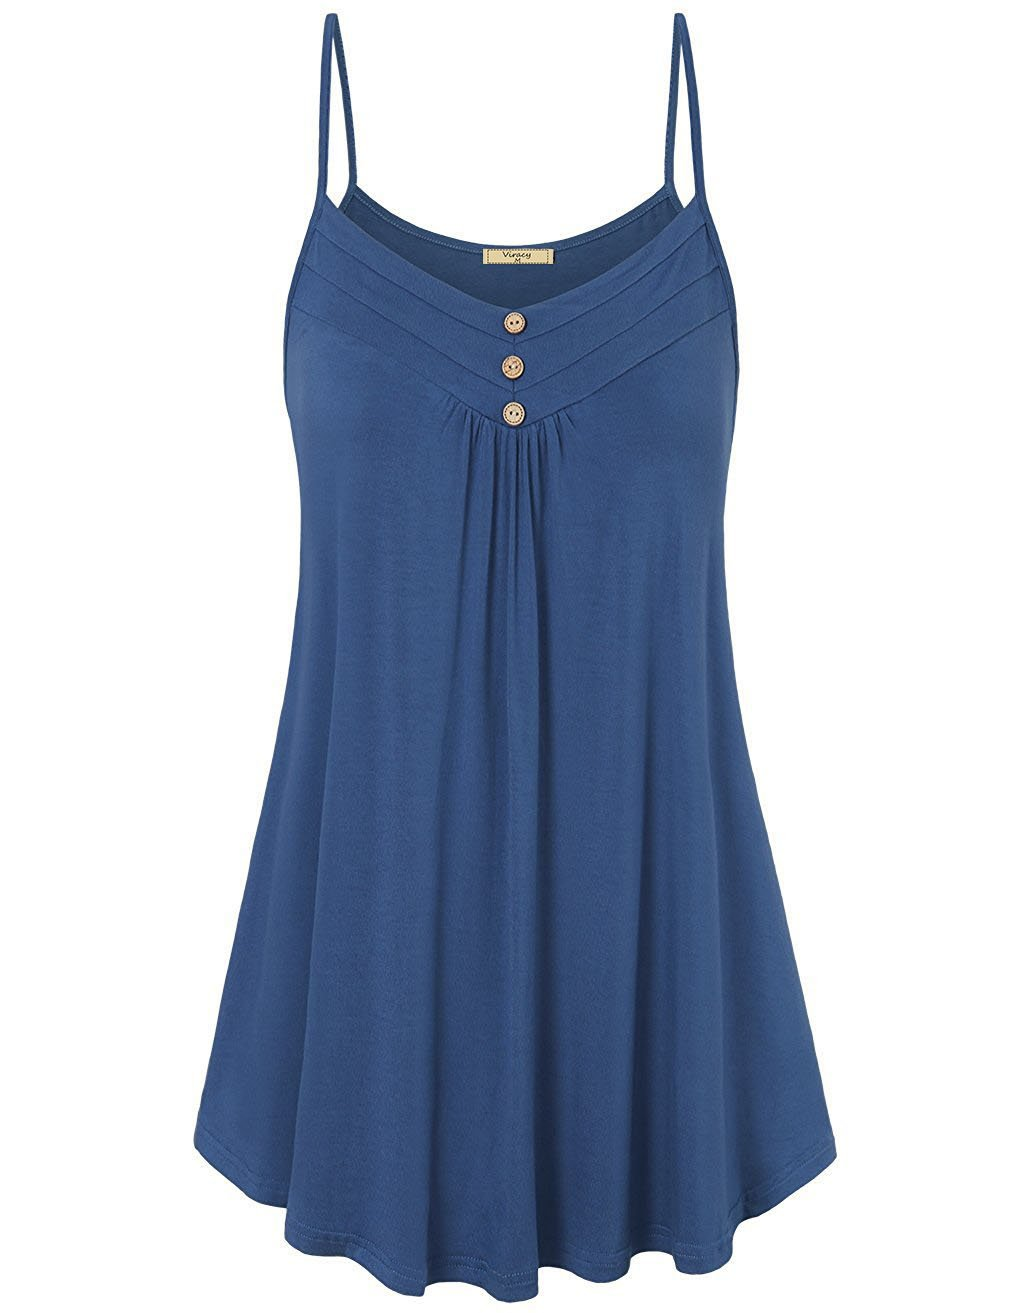 Viracy V Neck Tank Tops Women, Ladies Strappy Cami Fashion 2018 Summer Prime Trendy Classic Slender Airy Pleated Tunic Business Casual Loose Inner Shirts Solid Color Blue XL